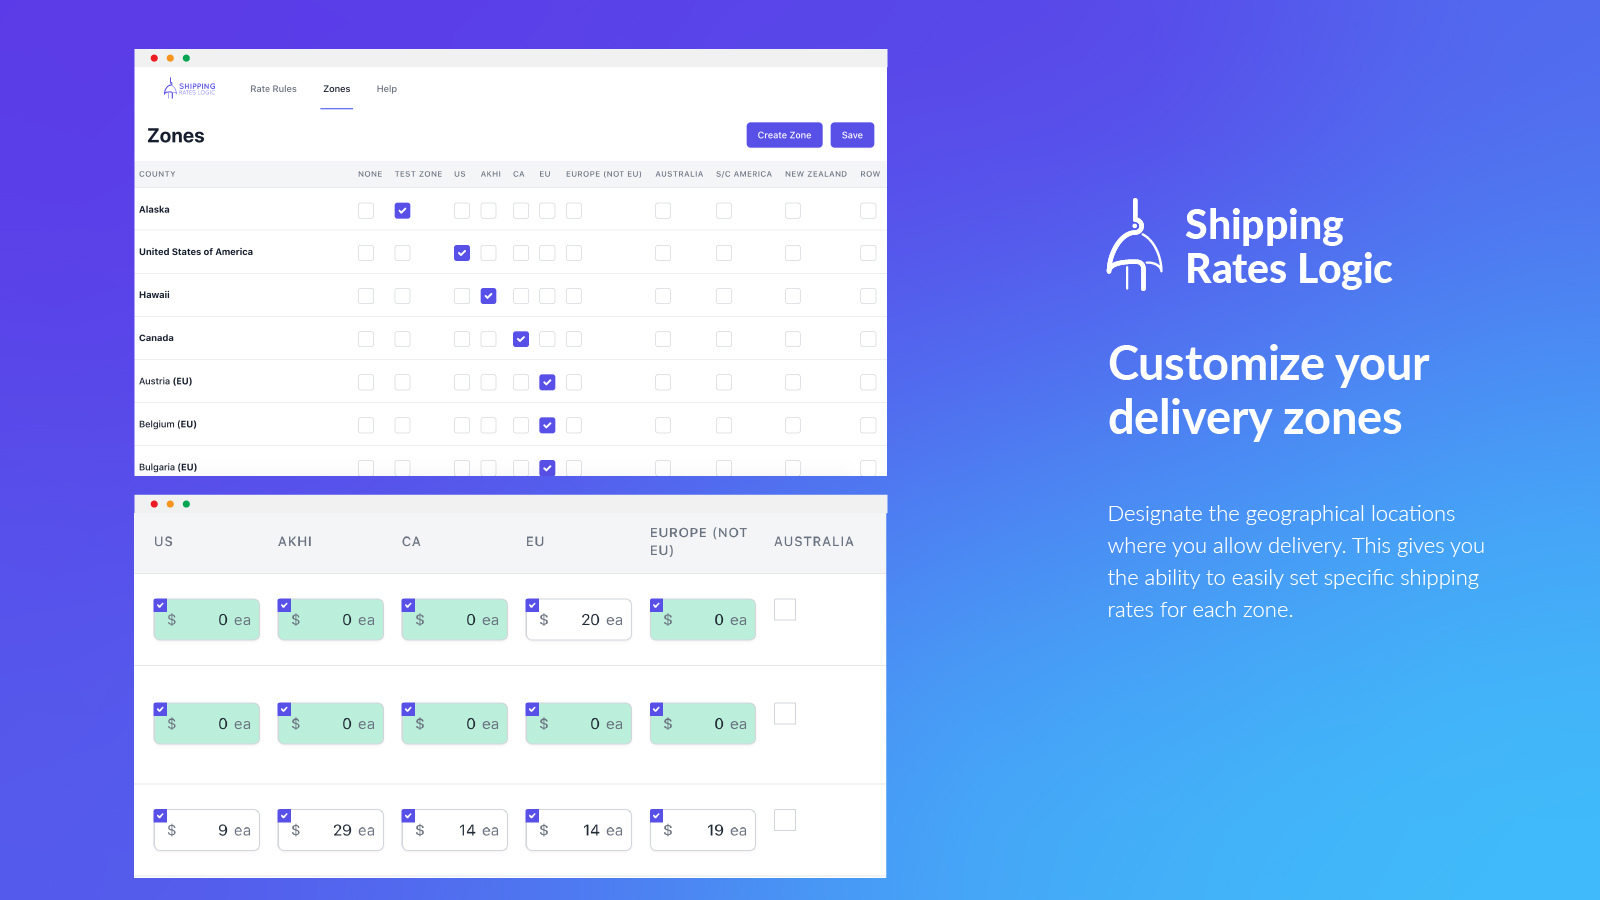 Select available delivery zones and set shipping rates by area.